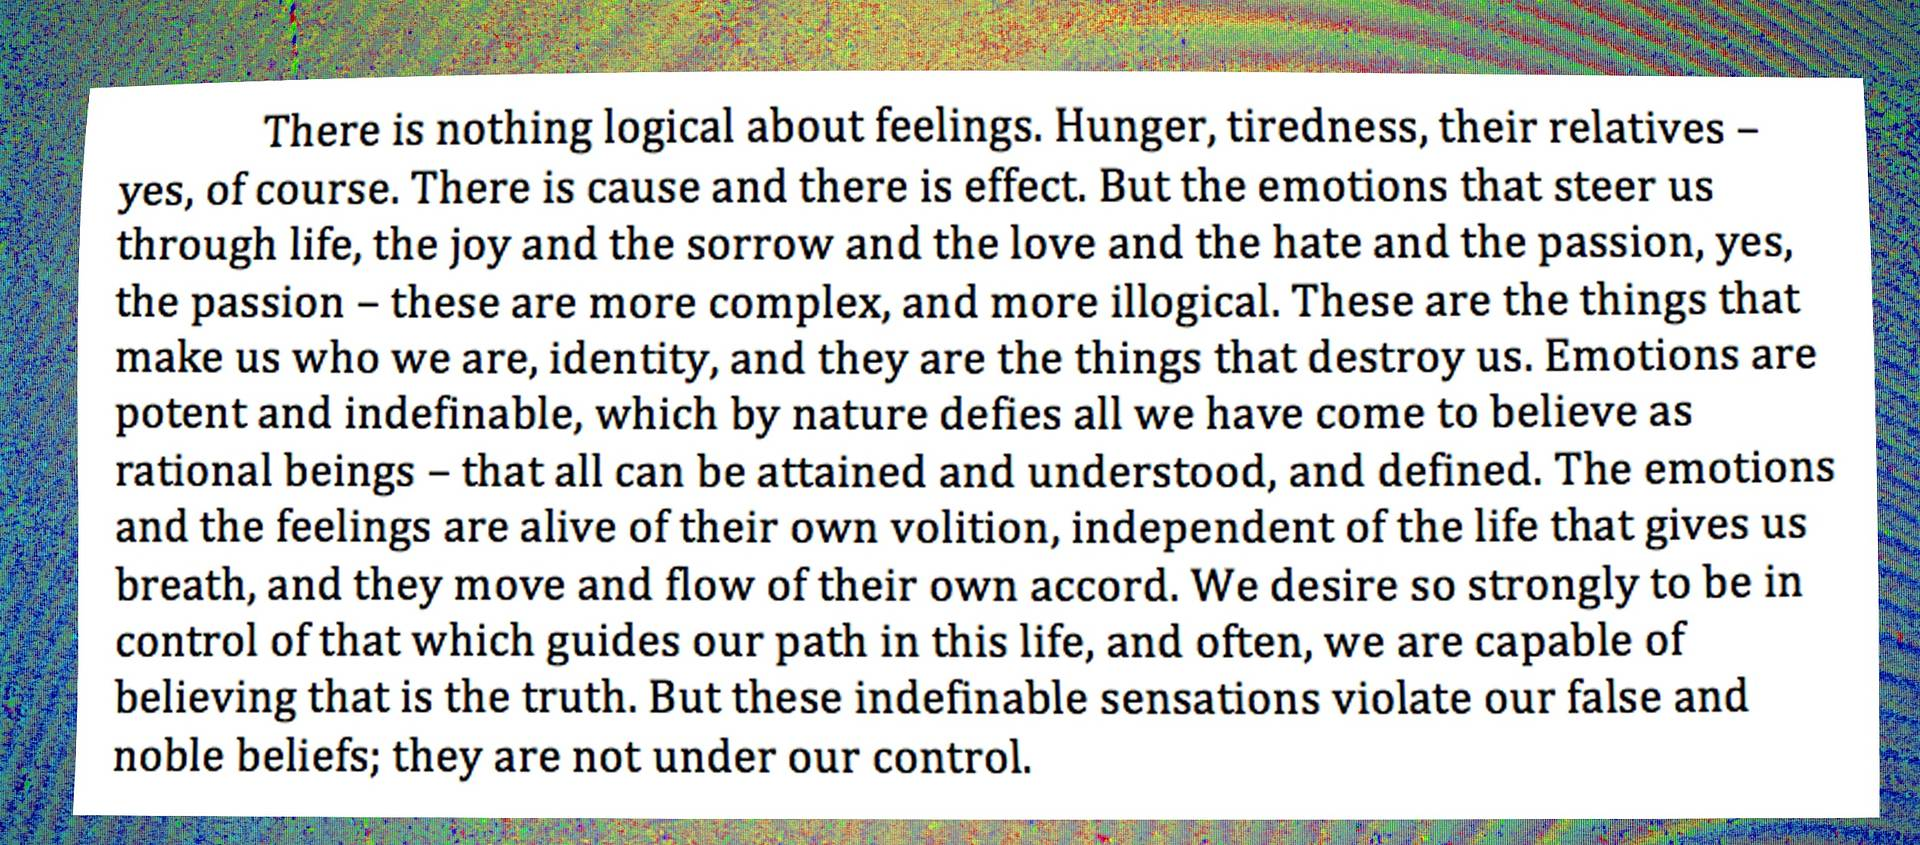 emotions and feelings pt.1 by Evan Fowler